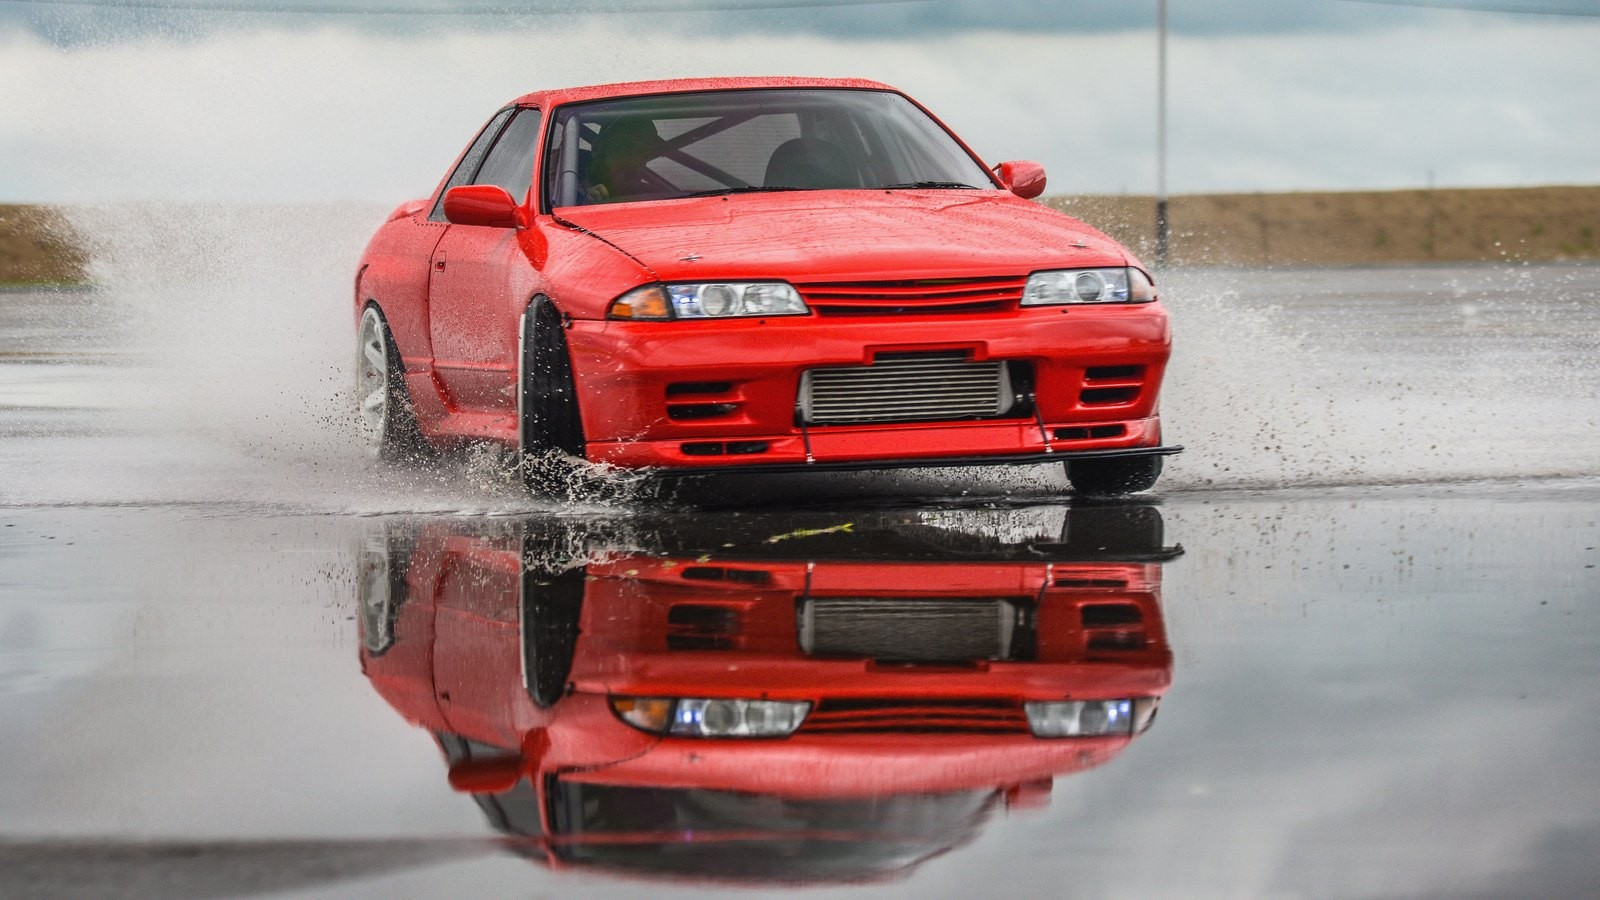 Nissan skyline R 32 red color on a wet road